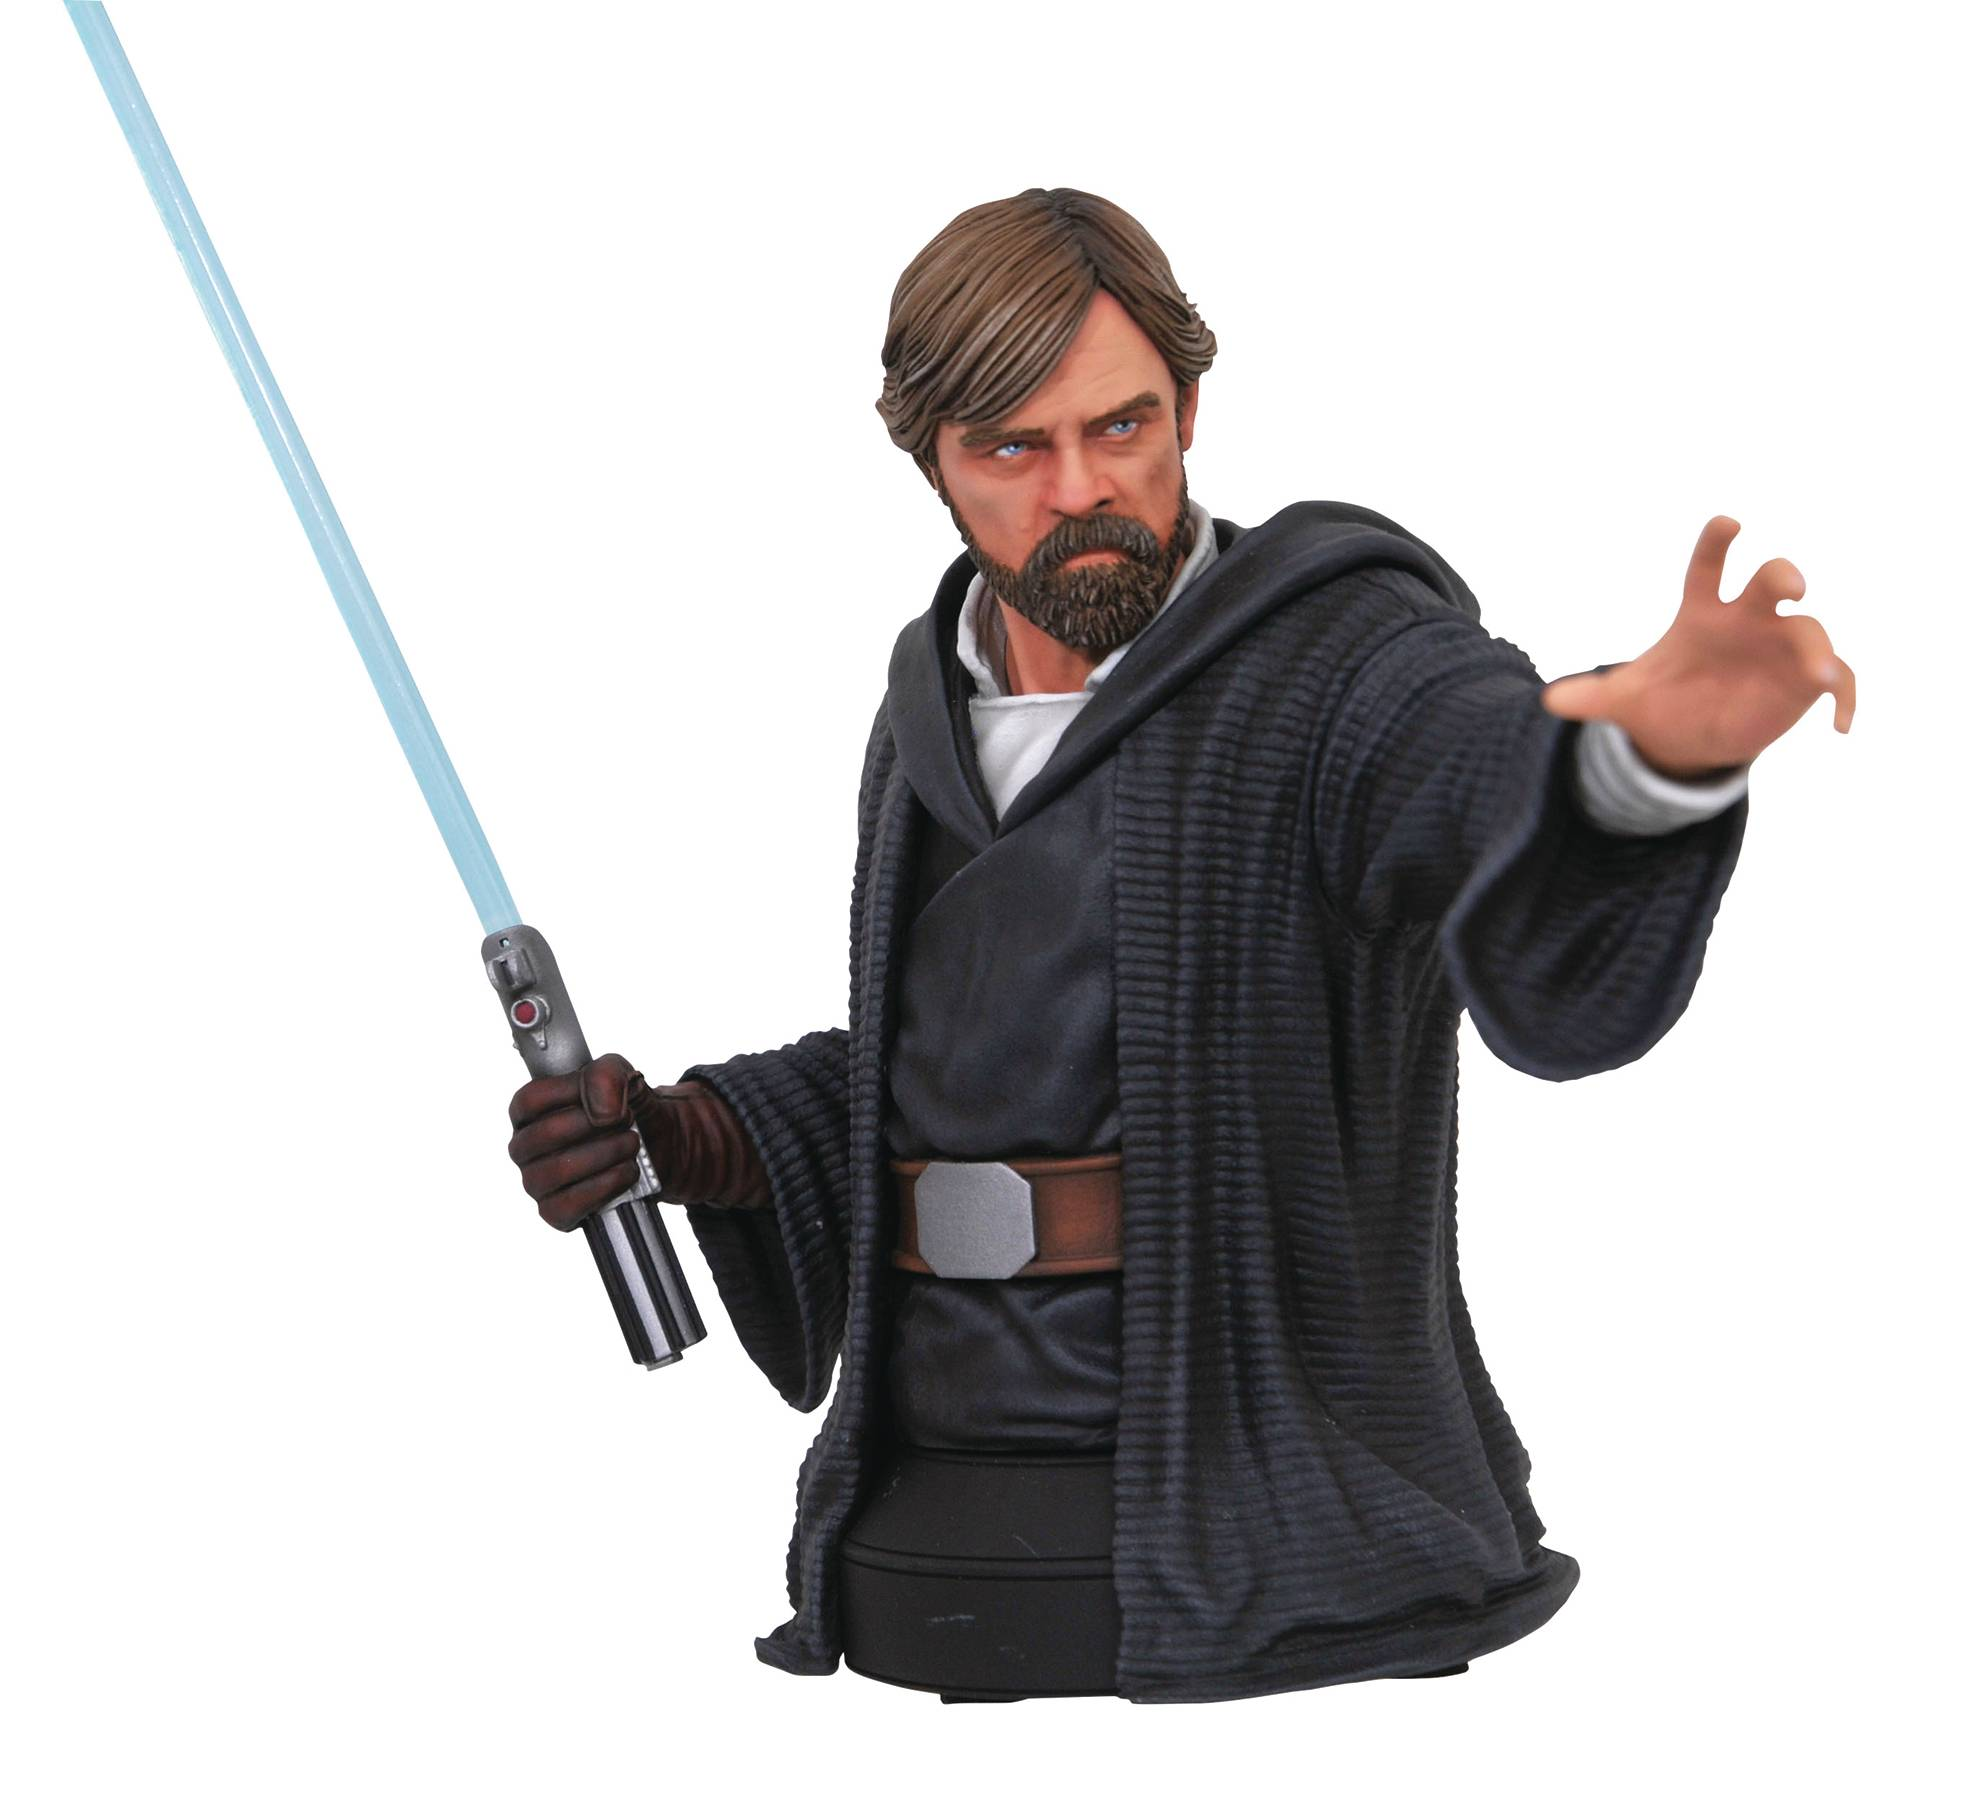 STAR WARS LAST JEDI LUKE SKYWALKER BUST